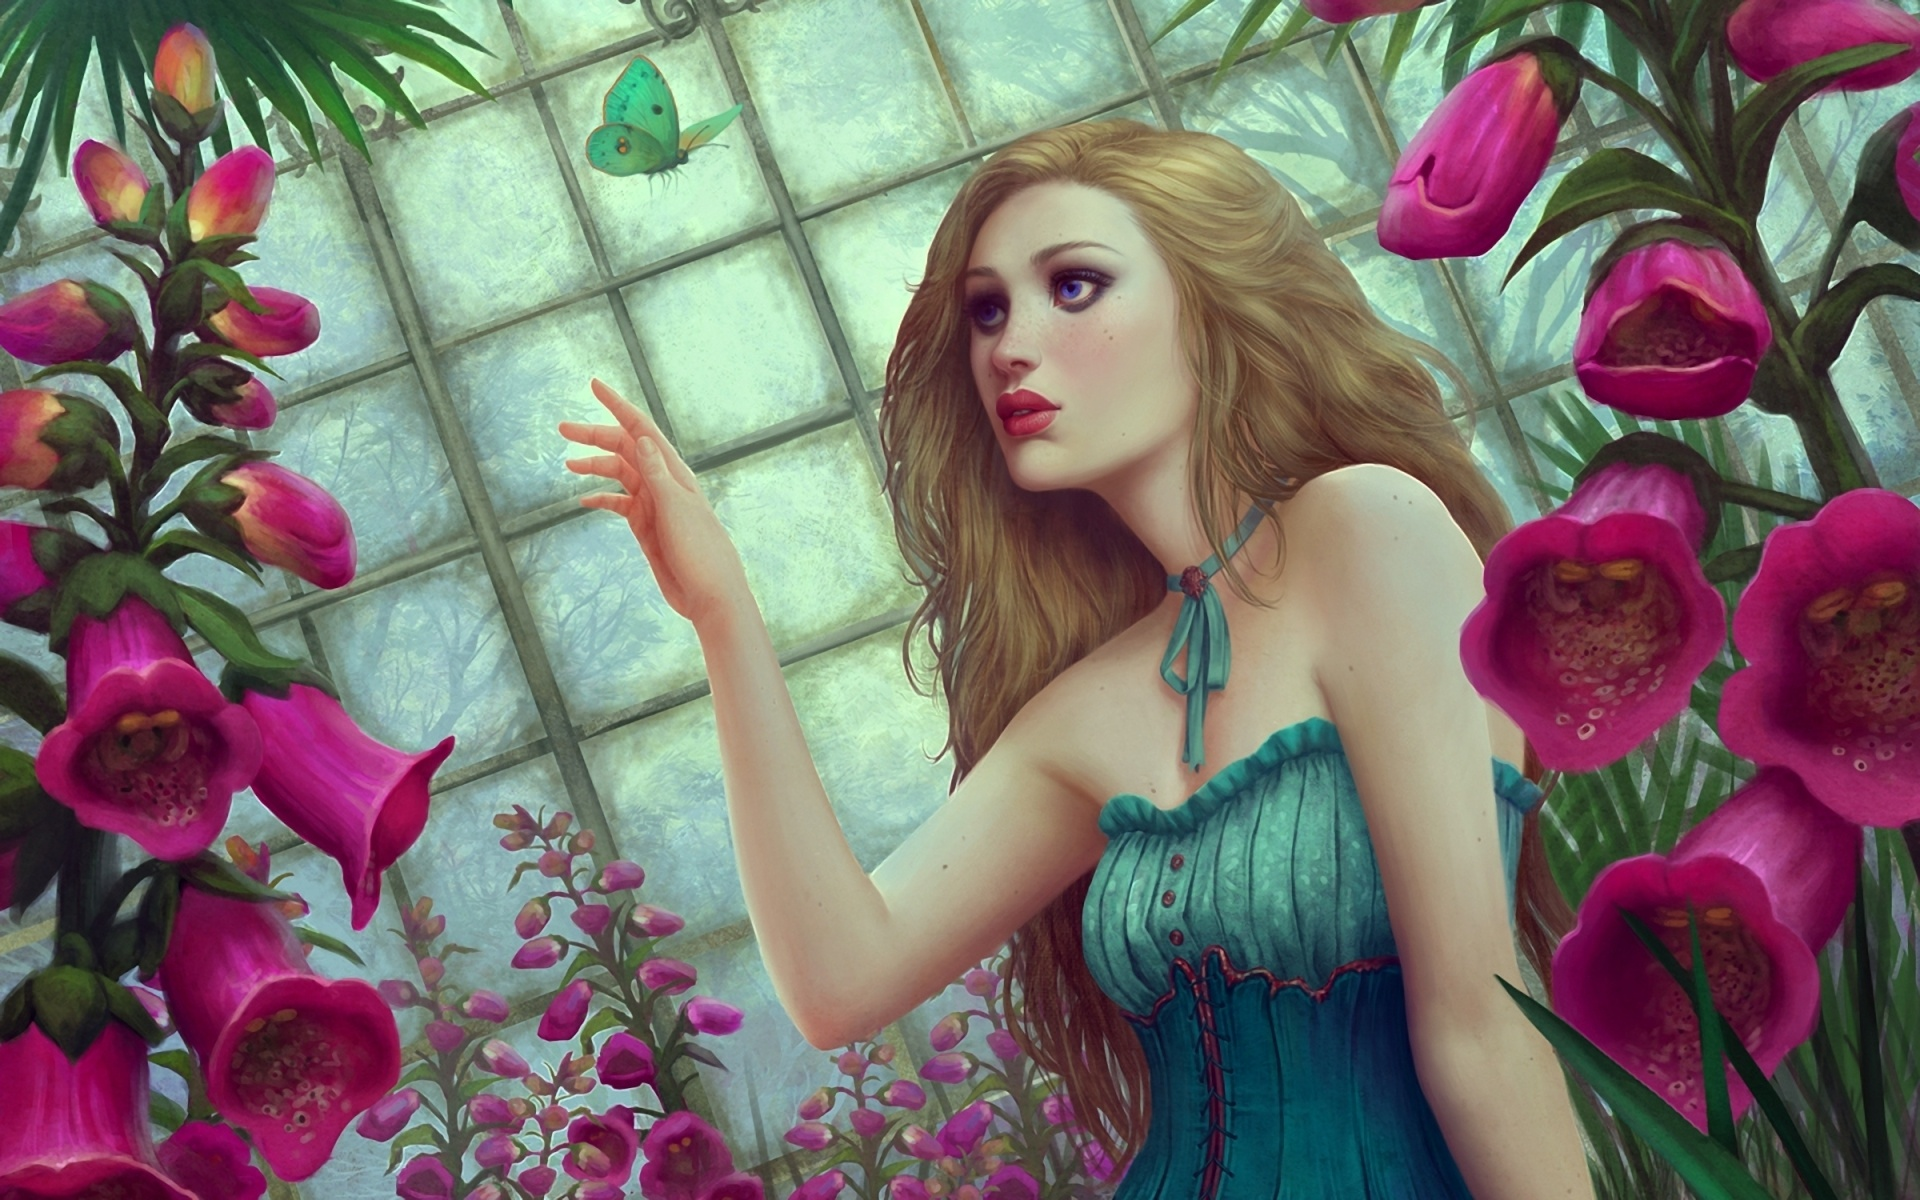 wallpaper flowers butterfly fantasy girl 1920x1200 hd picture, image